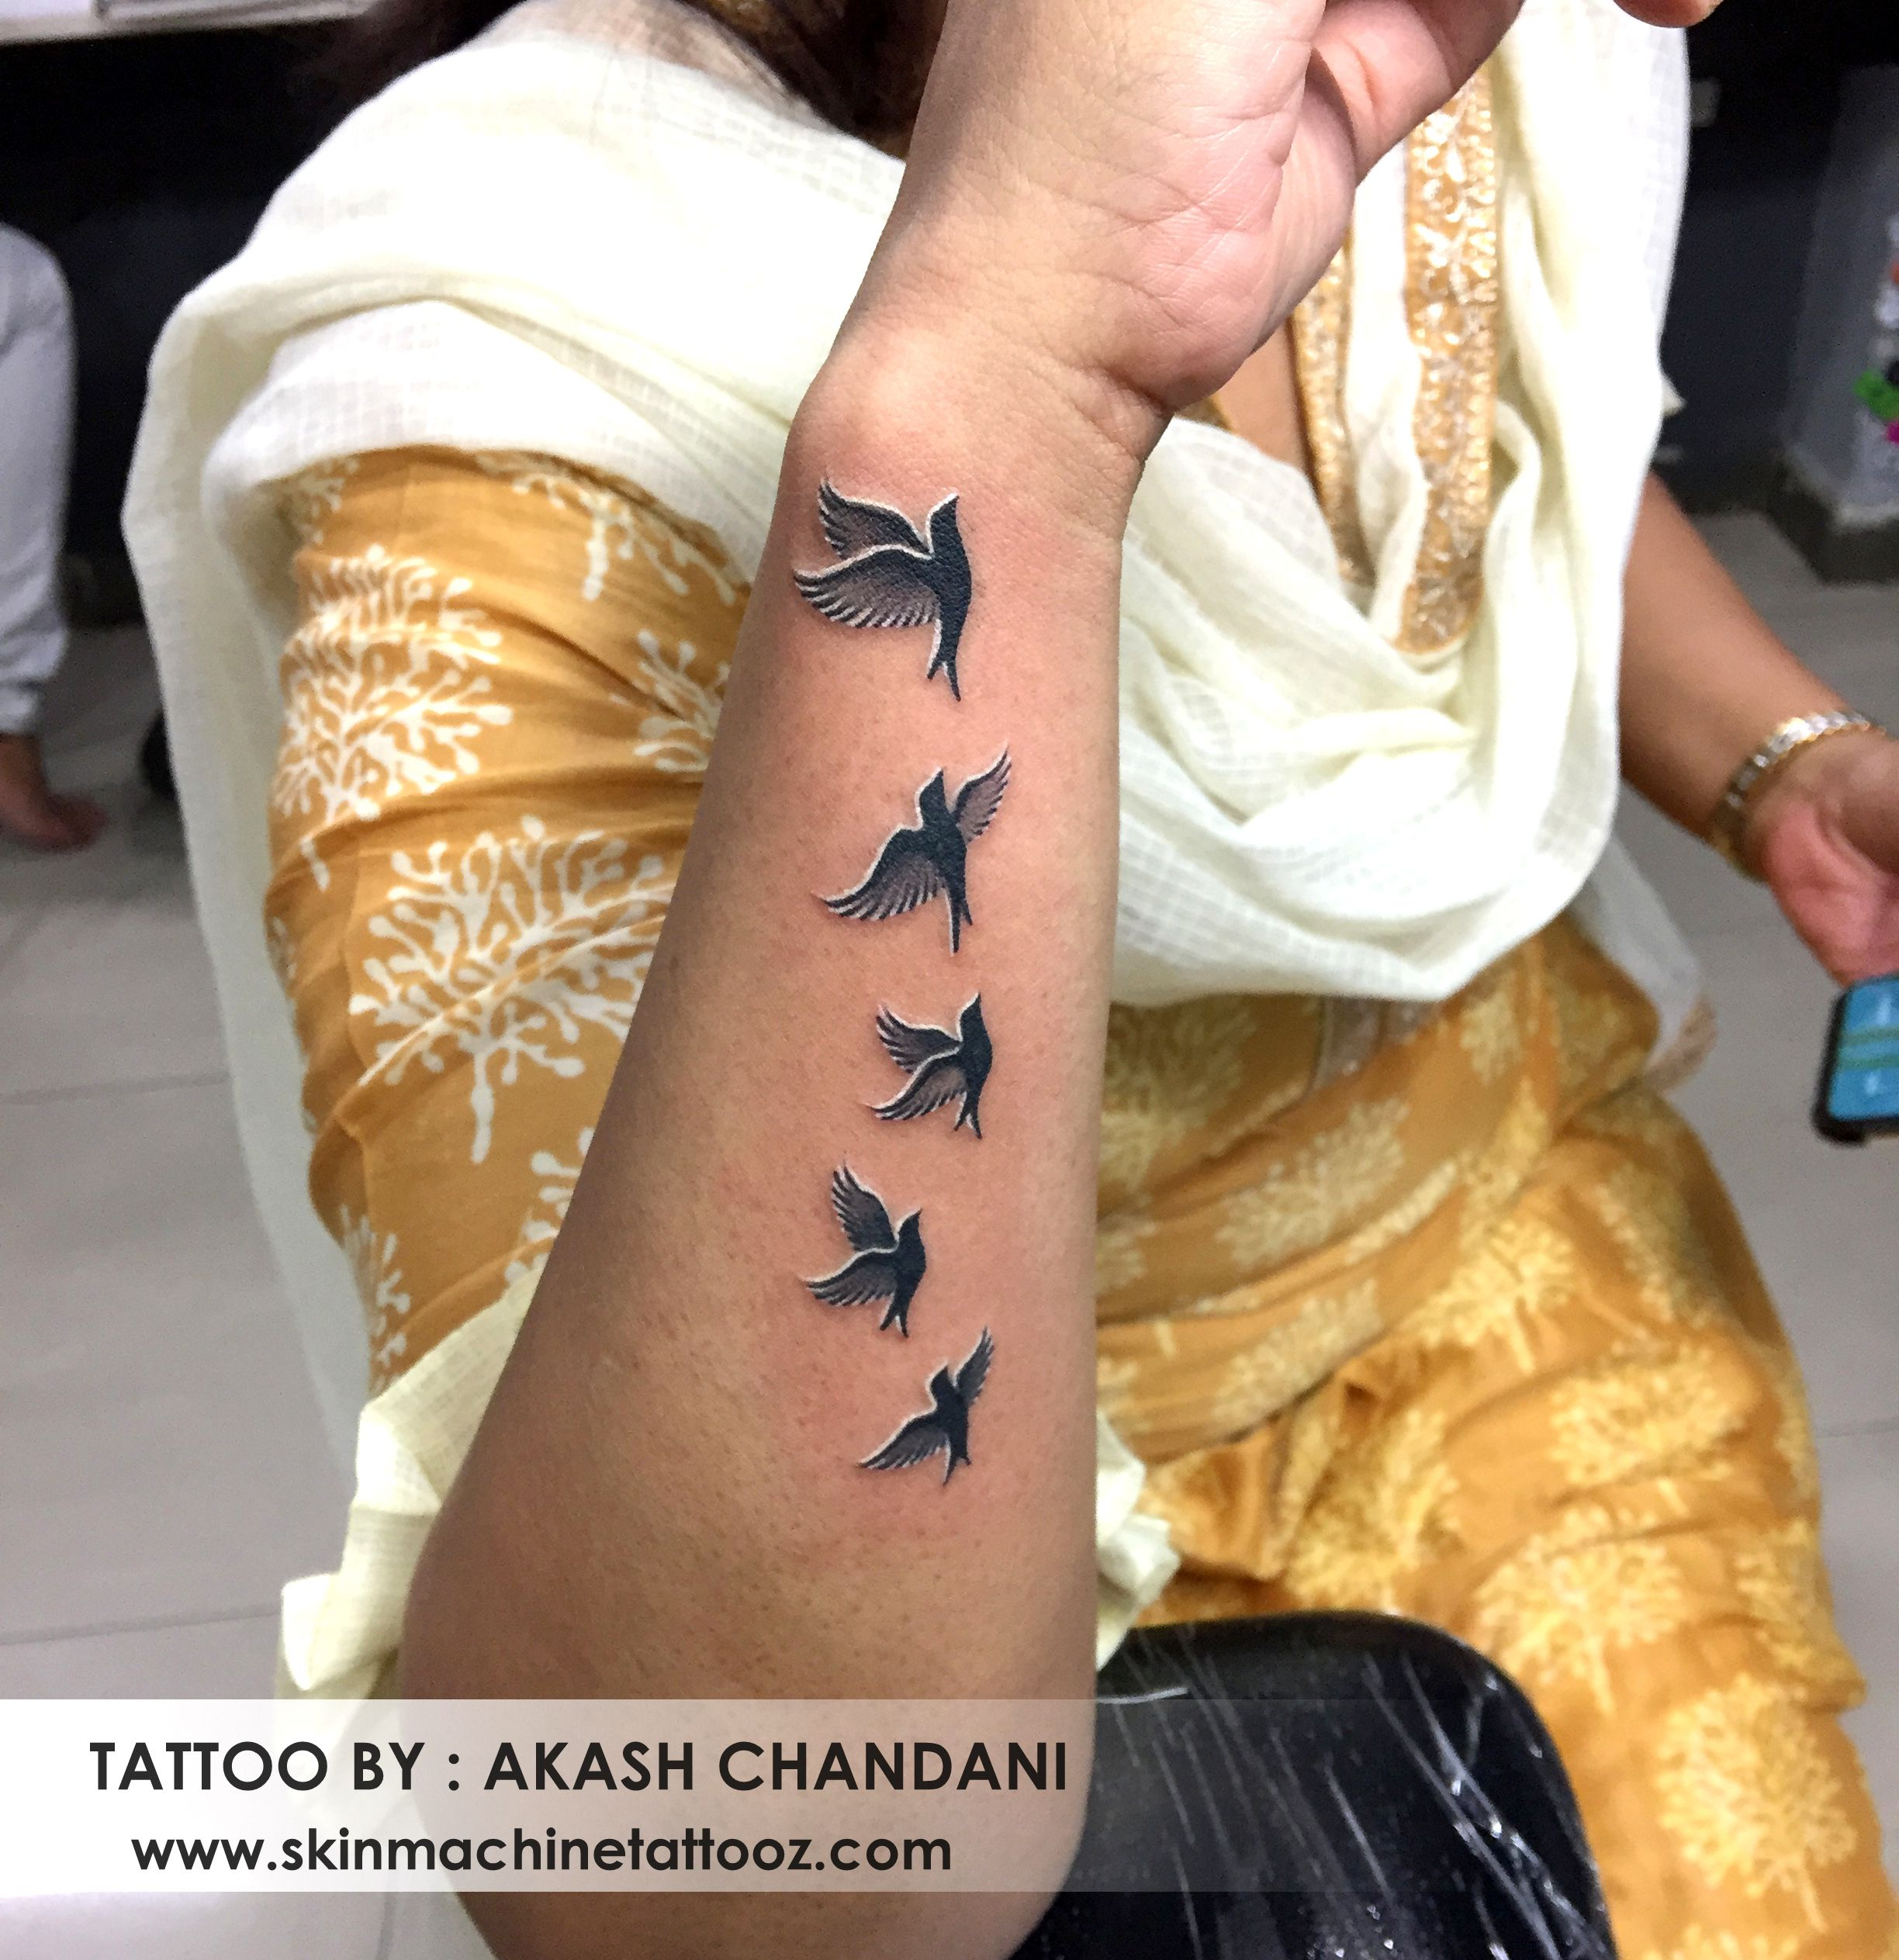 Flying Birds Tattoo By Akash Chandani Thanks For Looking Skin Machine Tattoo Studio Bhopal India Skinm Flying Bird Tattoo Birds Tattoo Tiny Bird Tattoos